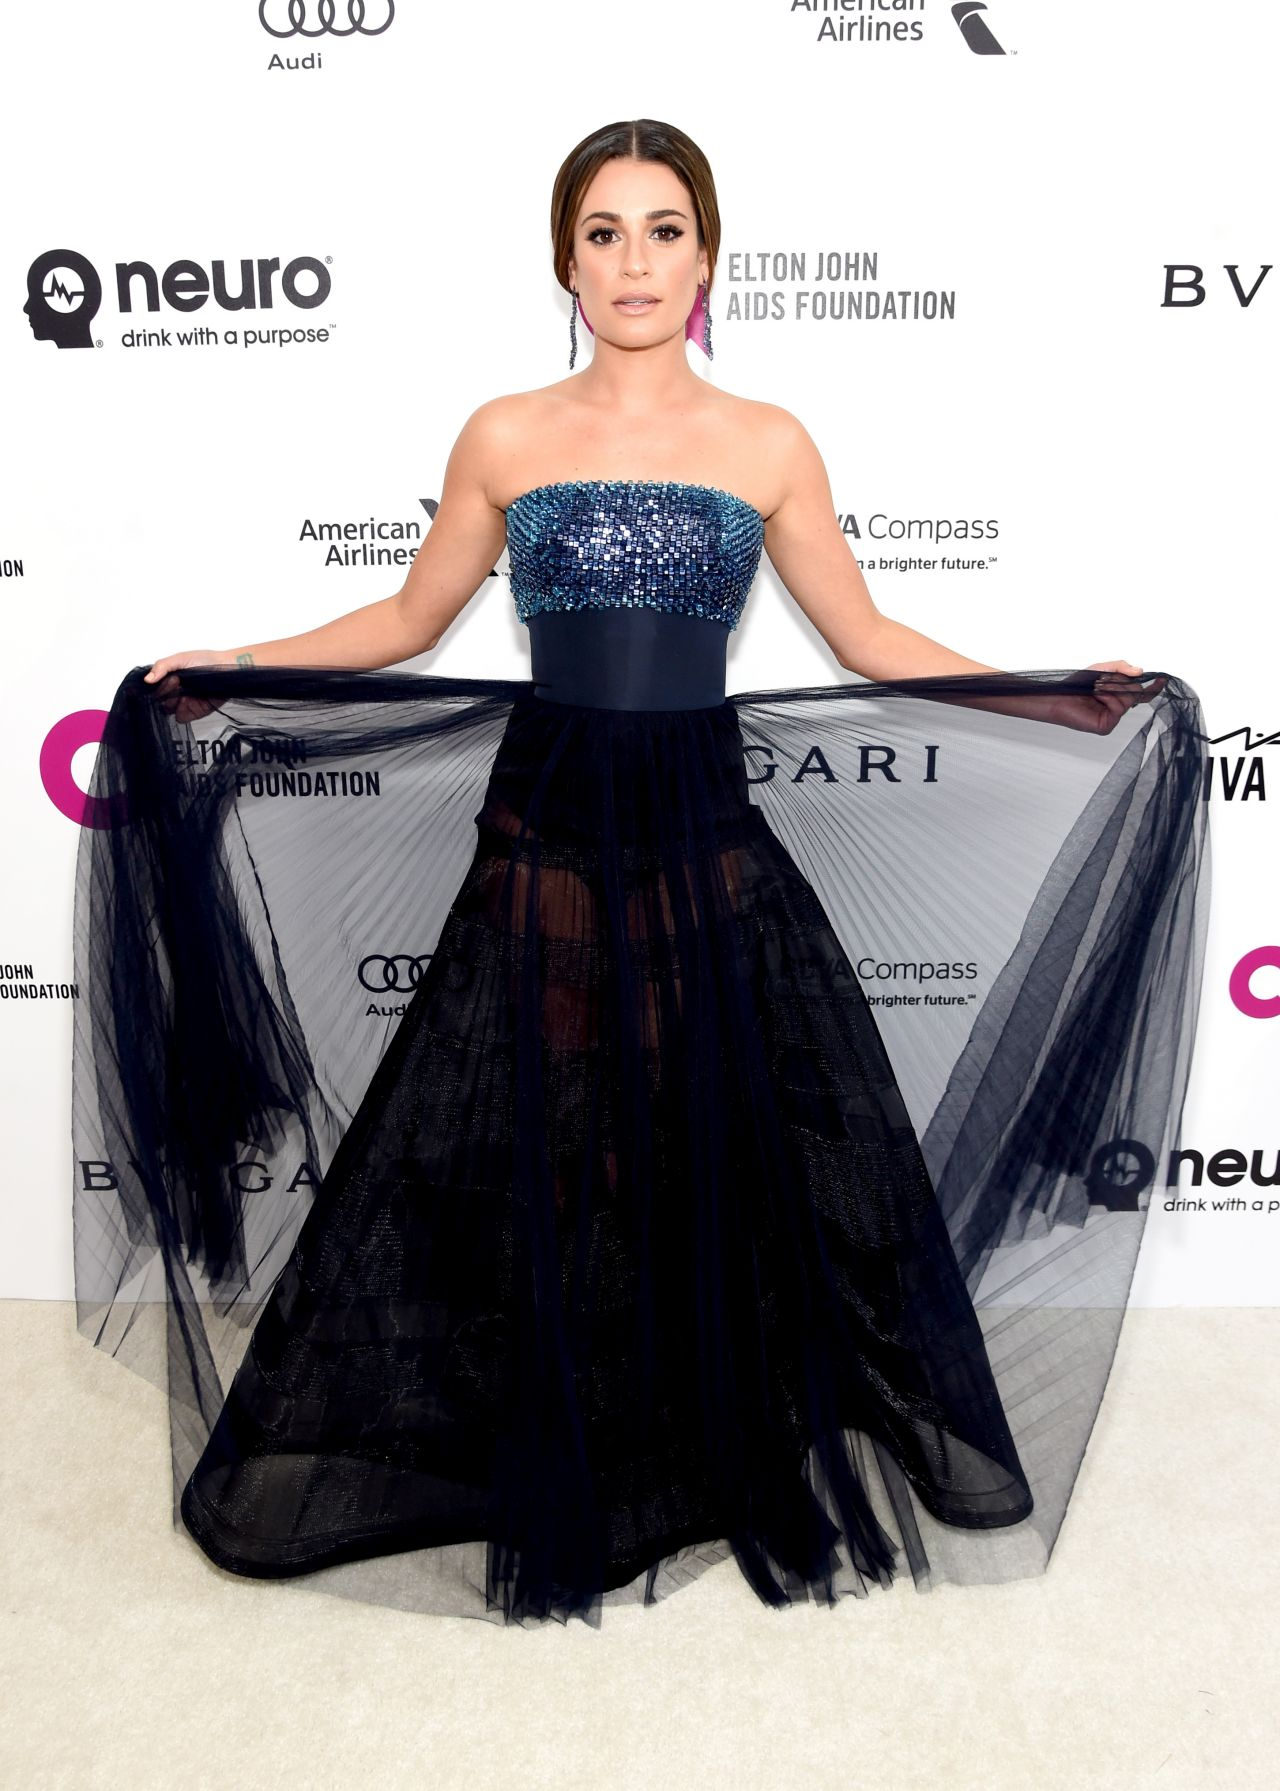 lea-michele-elton-john-aids-foundation-academy-awards-2016-viewing-party-in-west-hollywood-ca-1